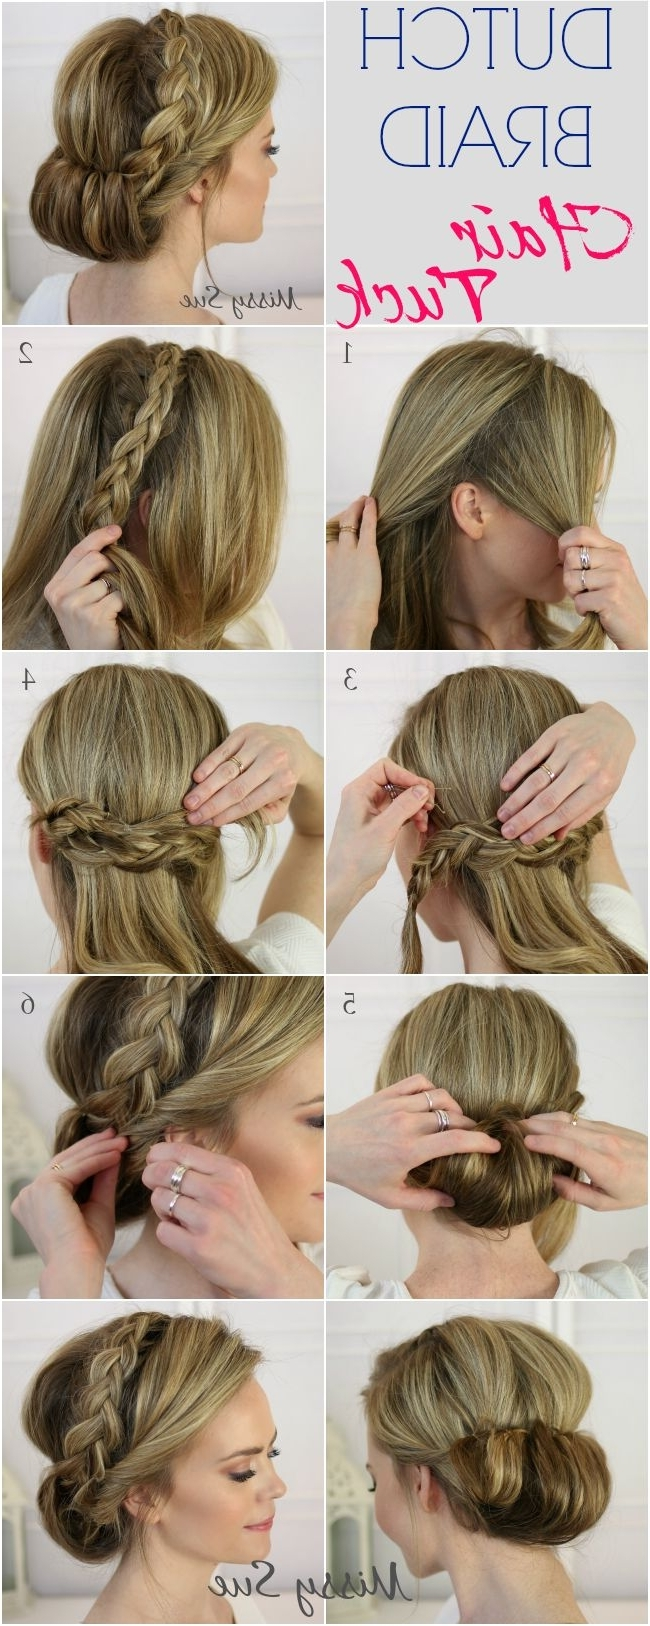 17 Stunning Dutch Braid Hairstyles With Tutorials – Pretty Designs With Trendy Ponytail Hairstyles With Dutch Braid (View 18 of 20)